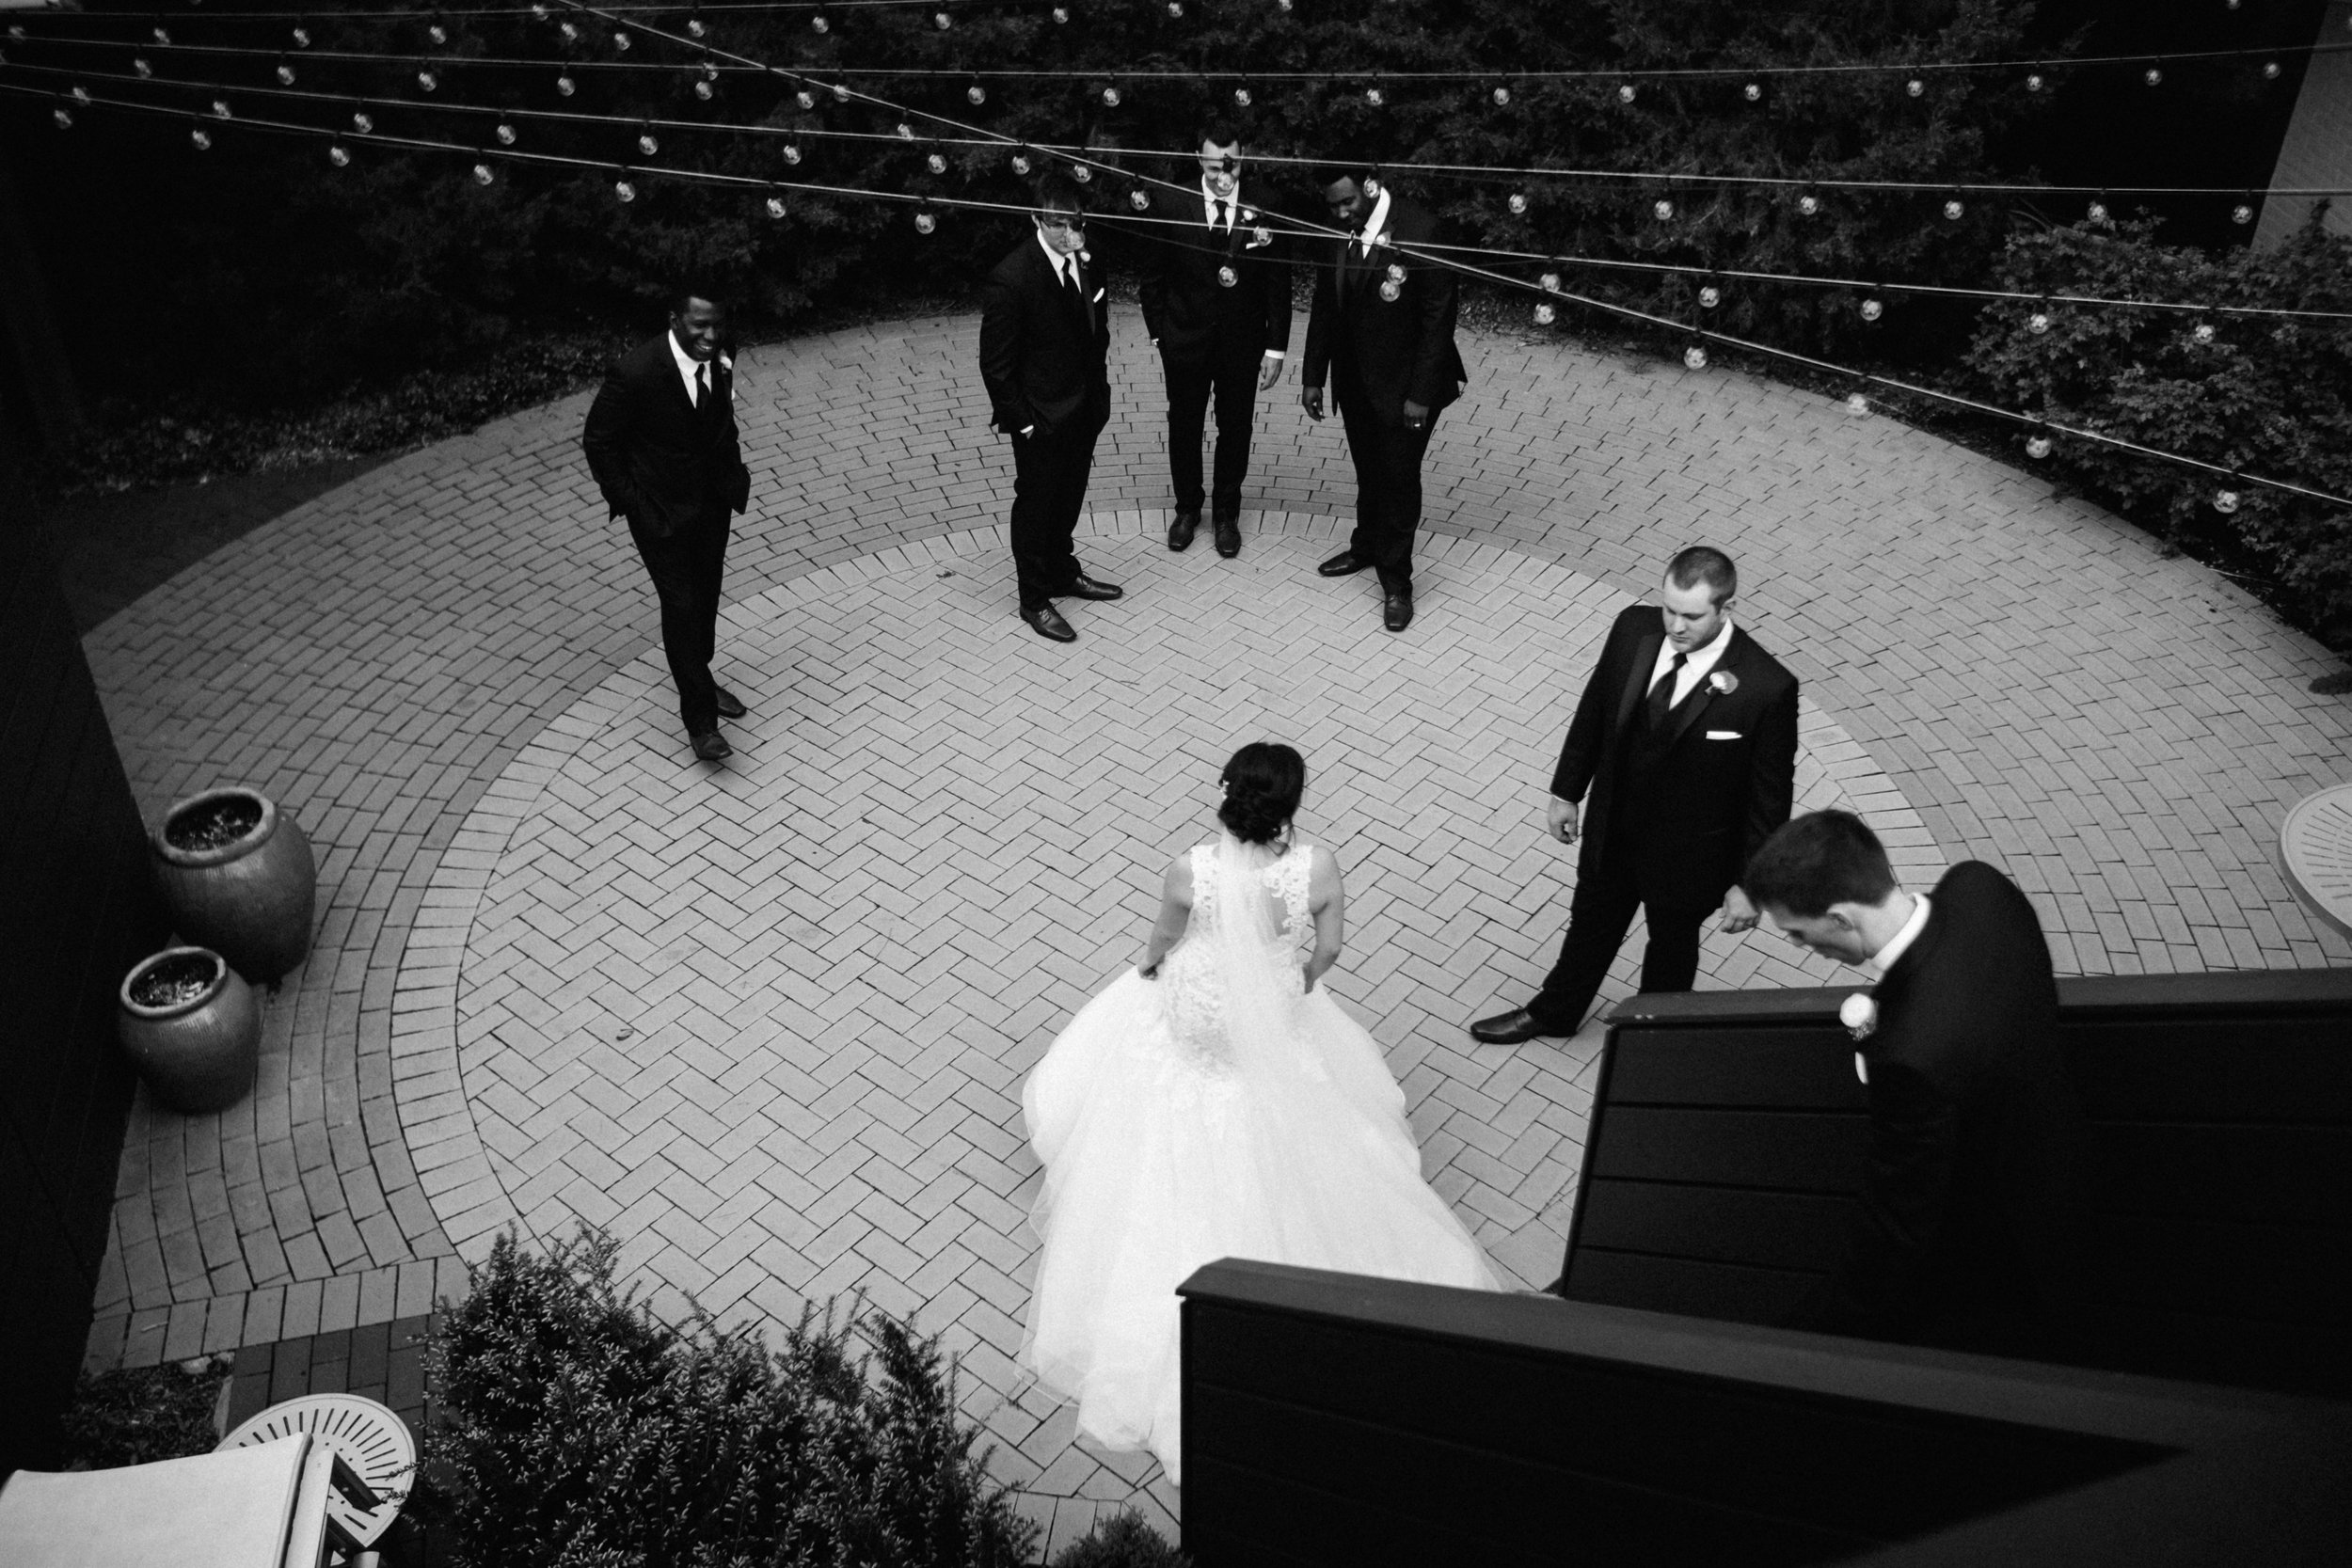 ShadowShinePictures-VeronicaToddKorthals-Ann-Arbor-Wedding-Photography-27.jpg